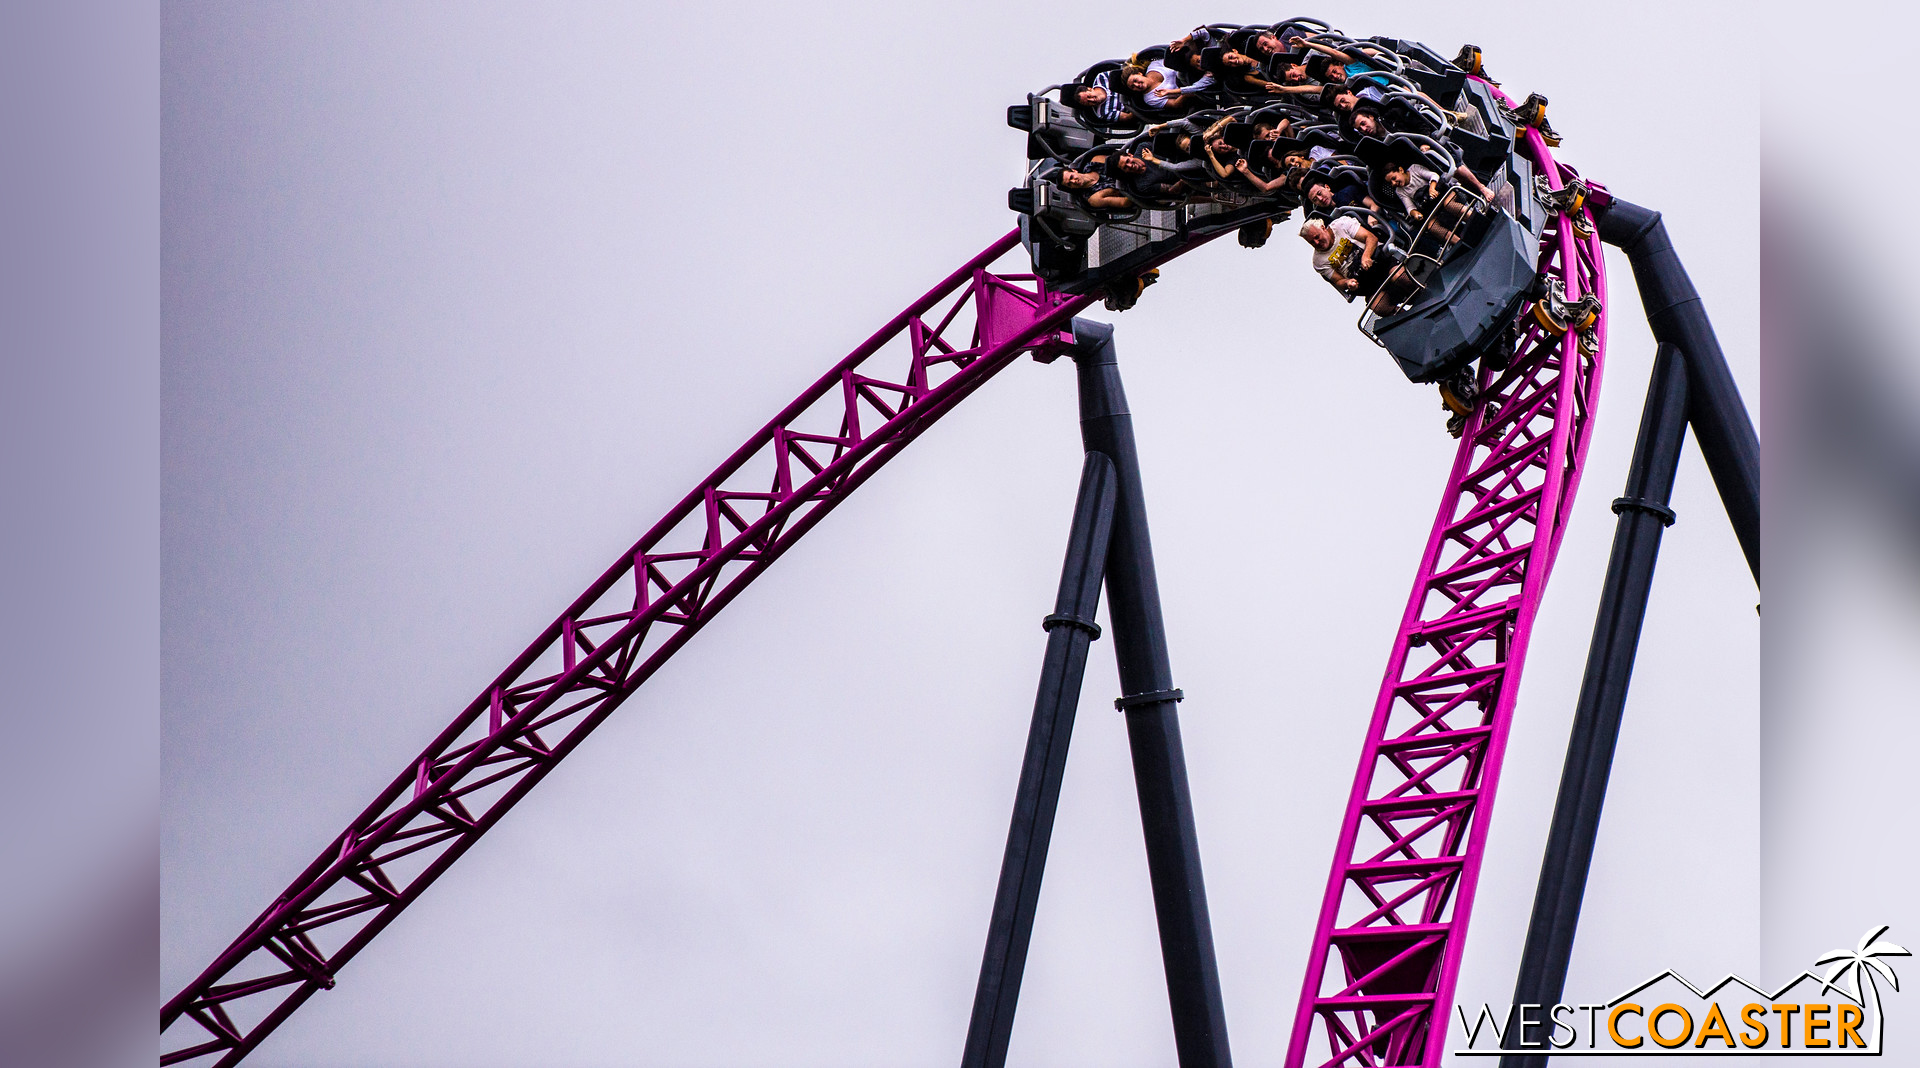 The speedy ride has a ton of twists and turns.